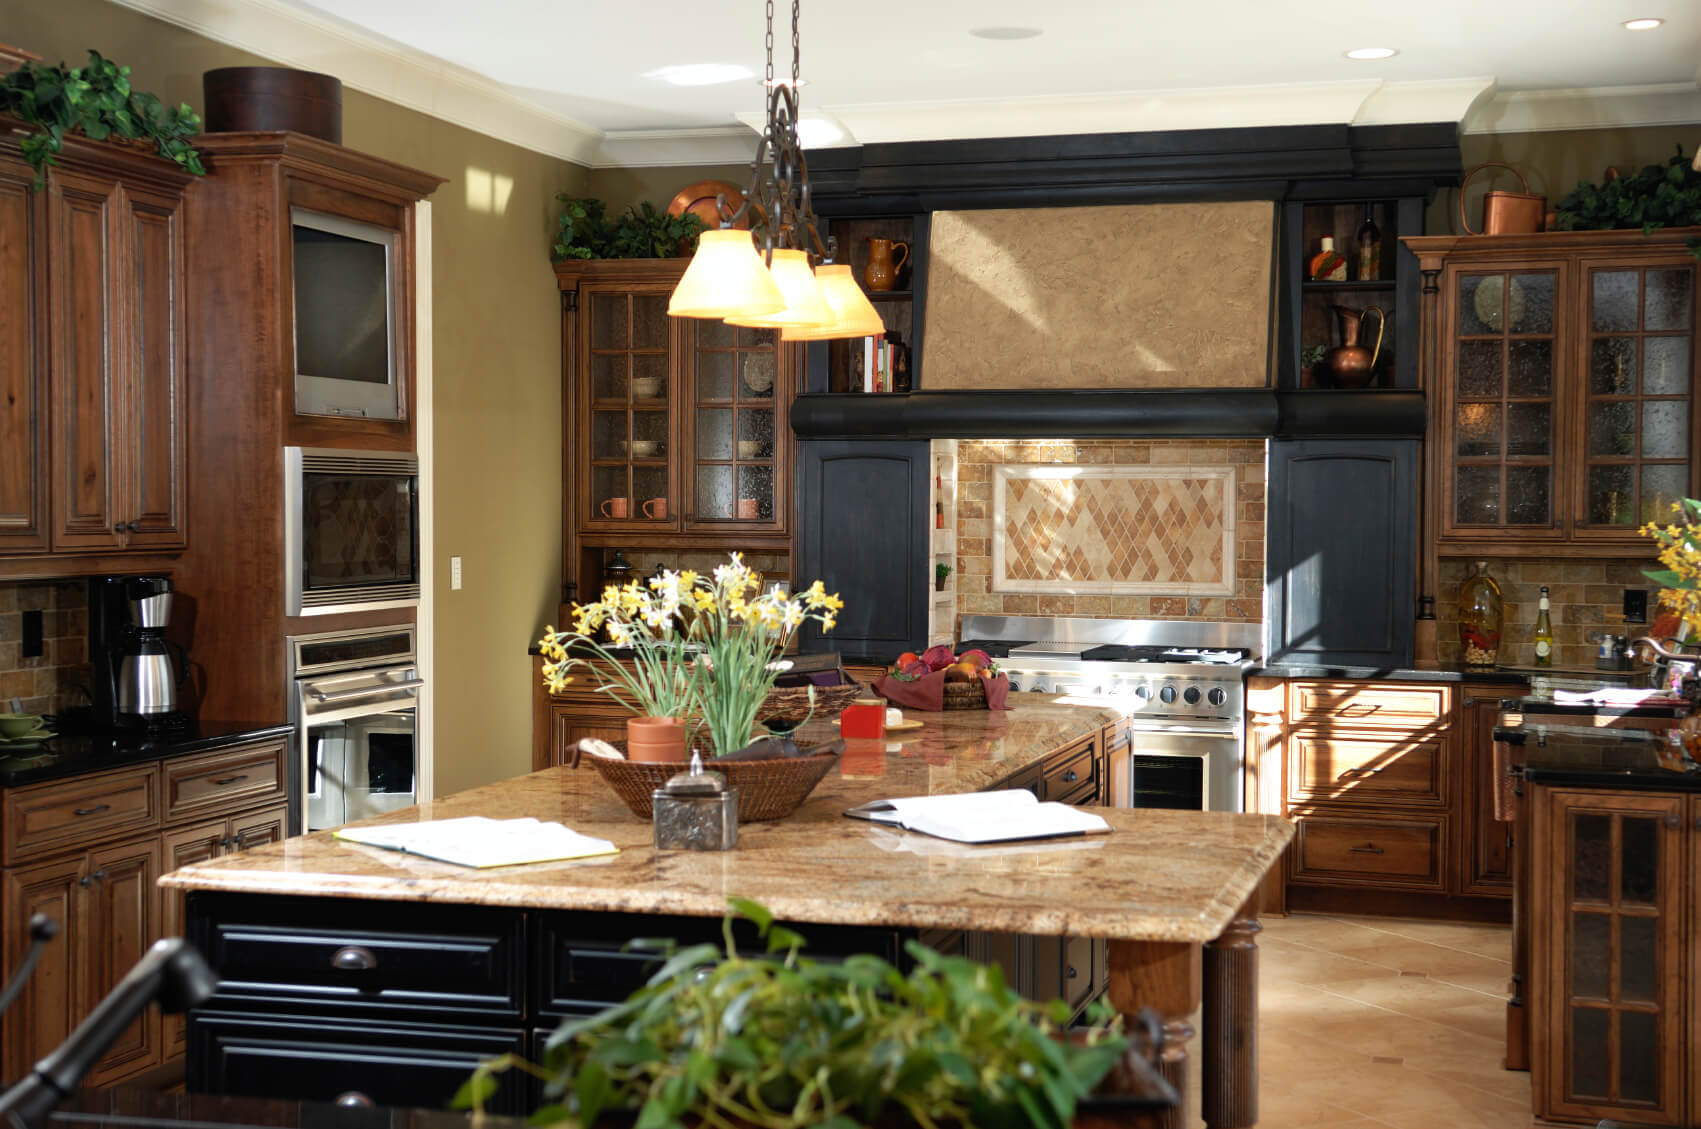 Dark Kitchens With Dark Wood OR Black Kitchen Cabinets - Color schemes for kitchens with dark cabinets